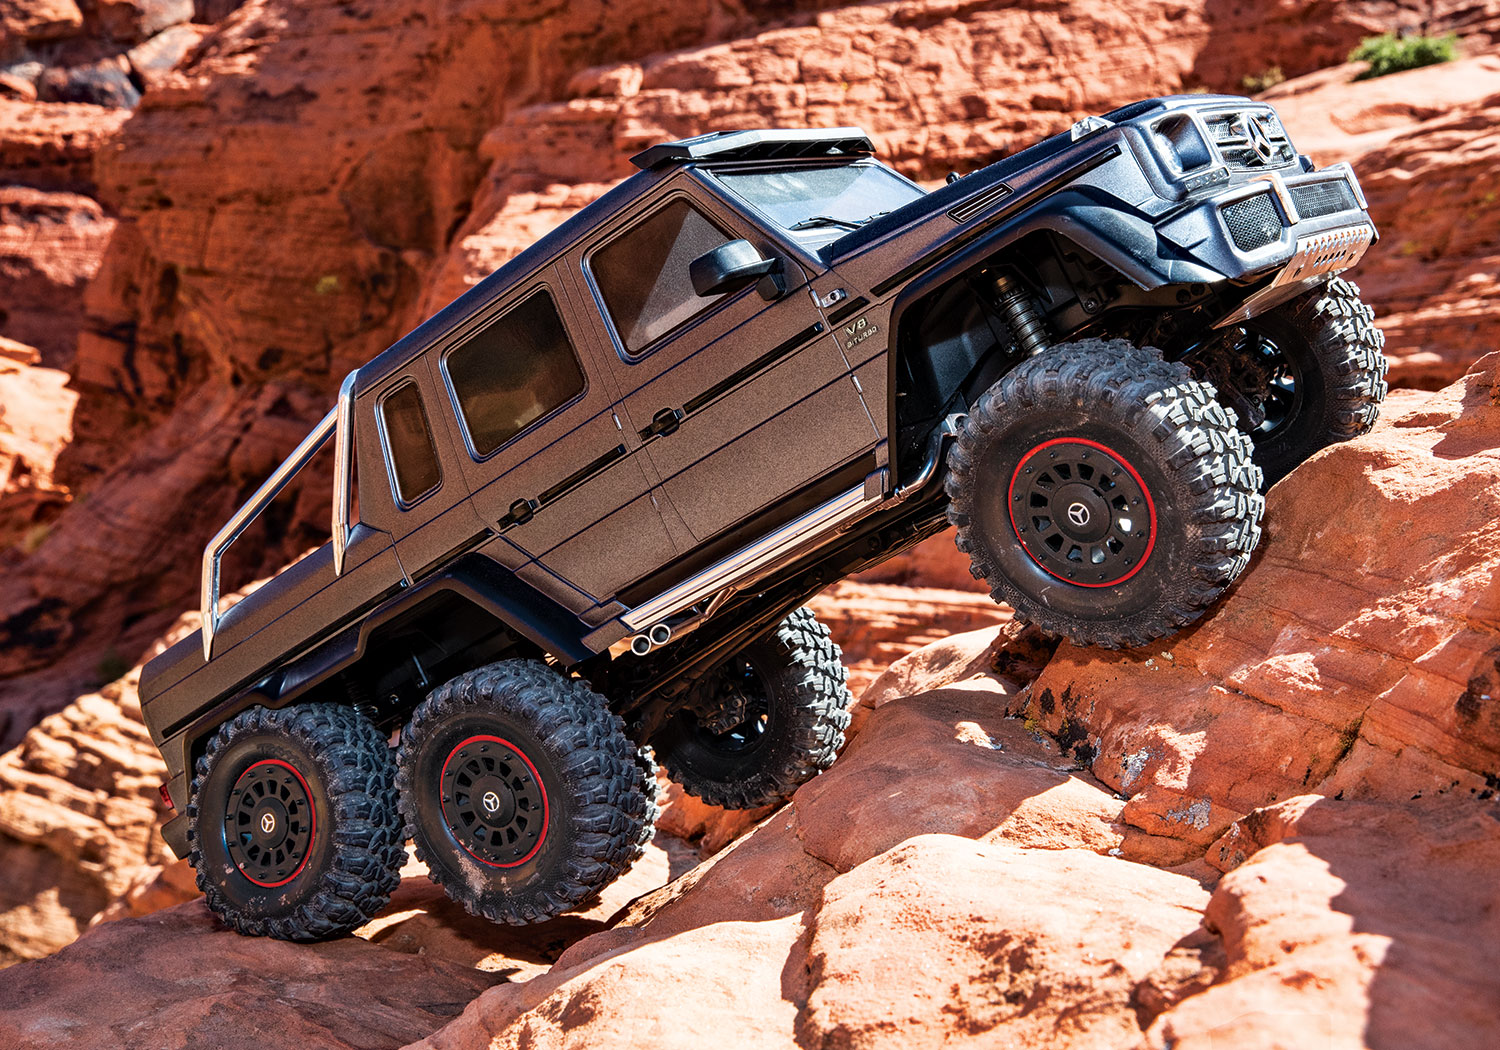 TRX-6 Mercedes-Benz 6x6 Rock Crawler